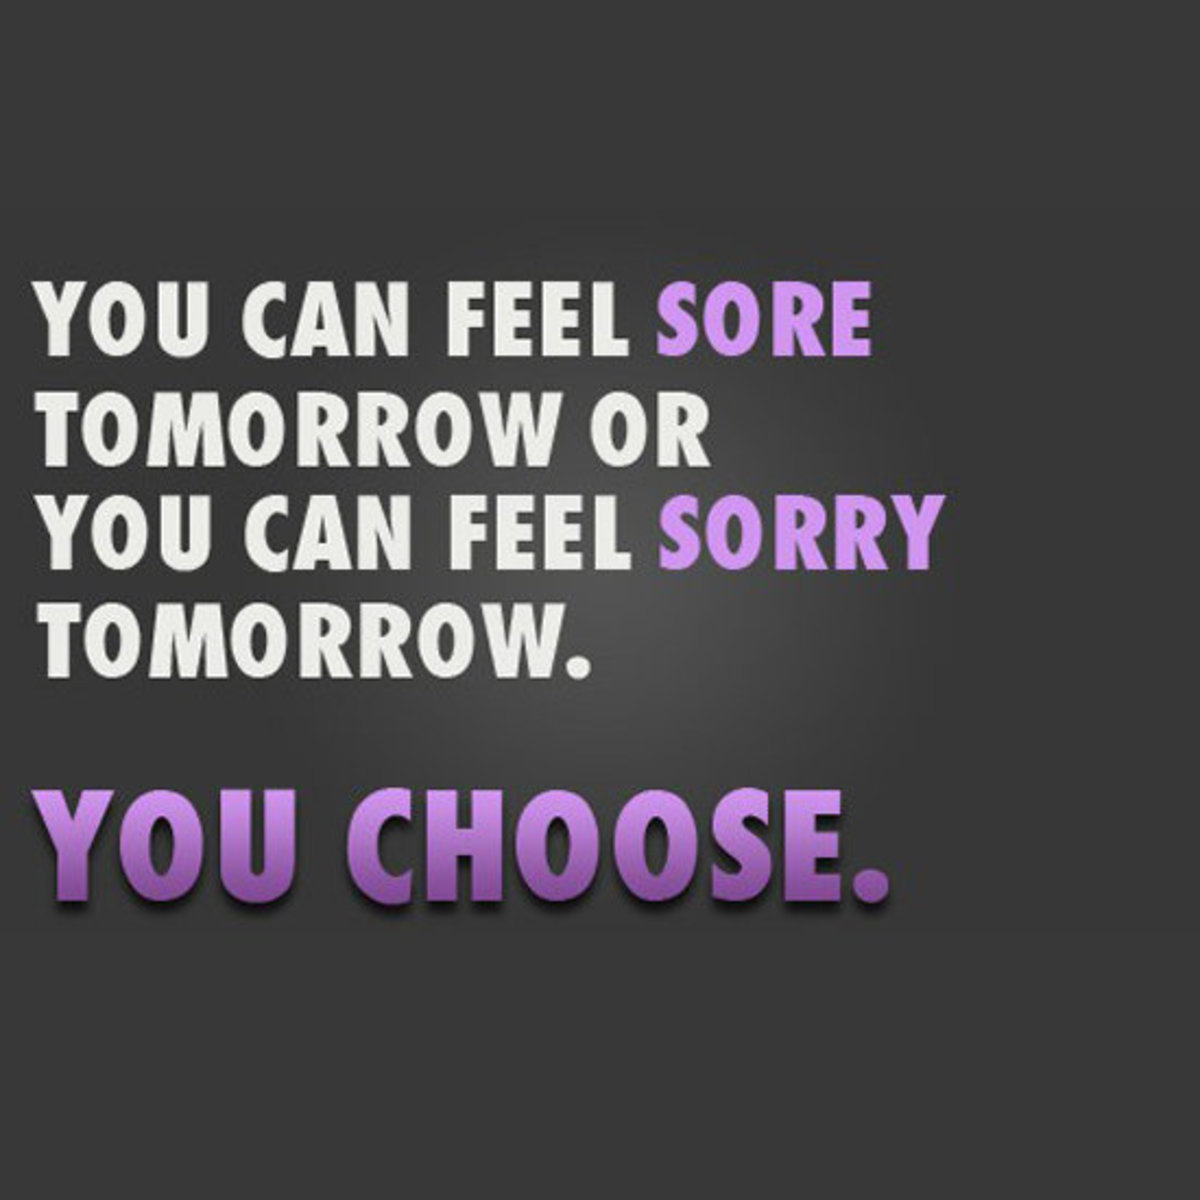 You can feel sore tomorrow or you can feel sorry tomorrow. YOU CHOOSE